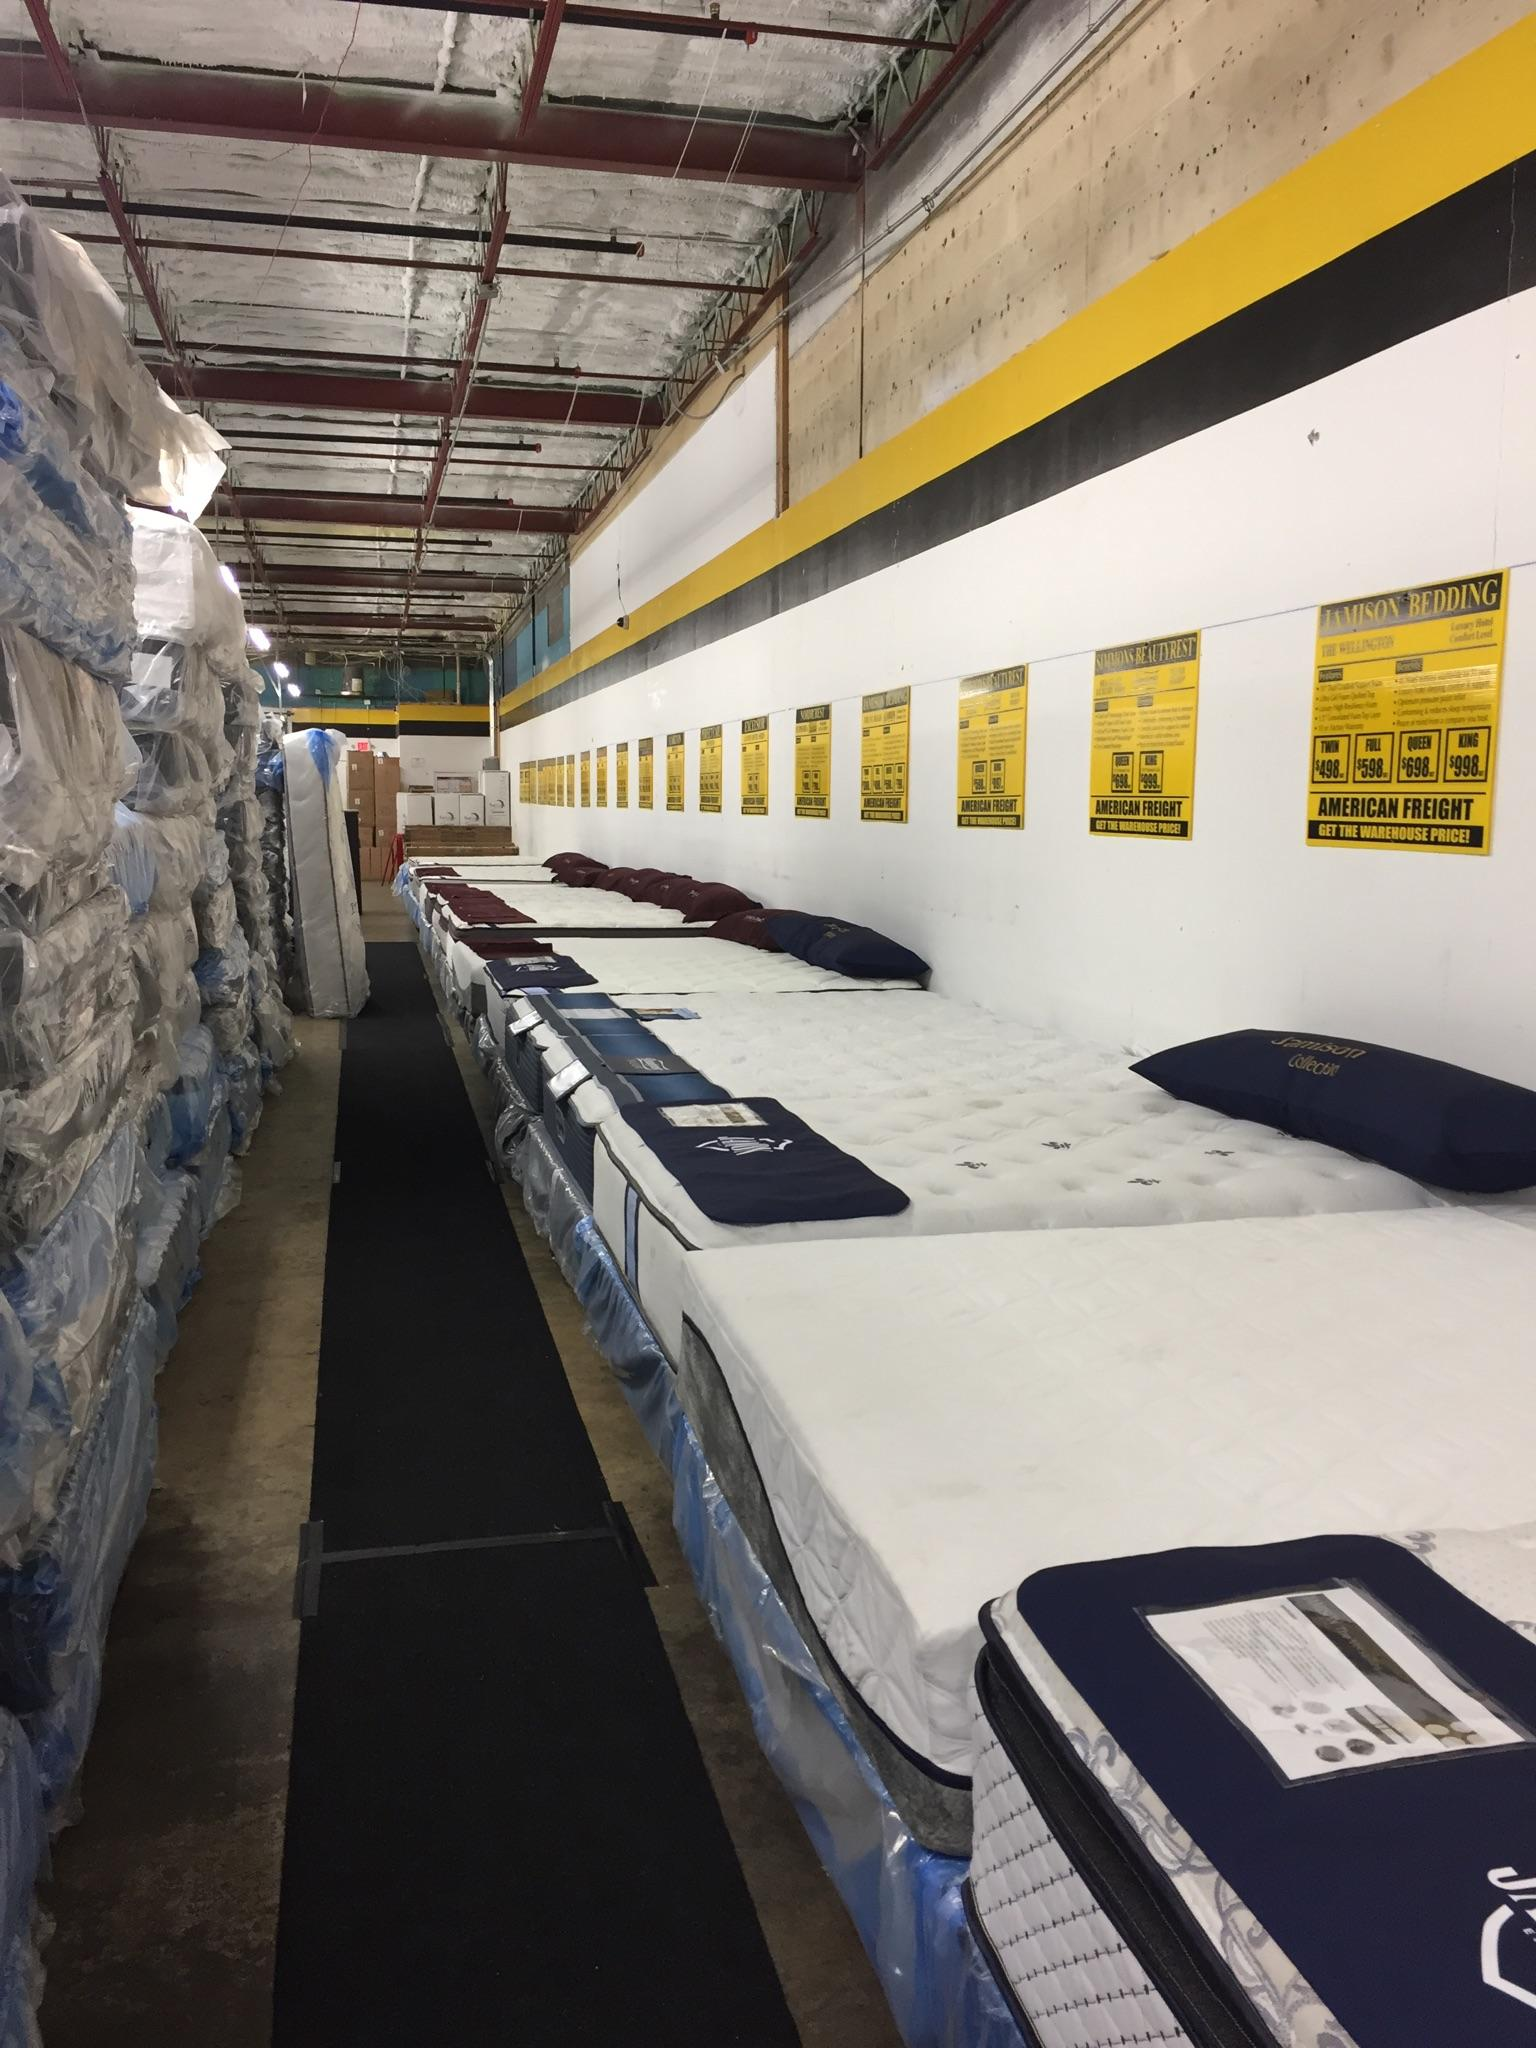 American Freight Furniture and Mattress image 3